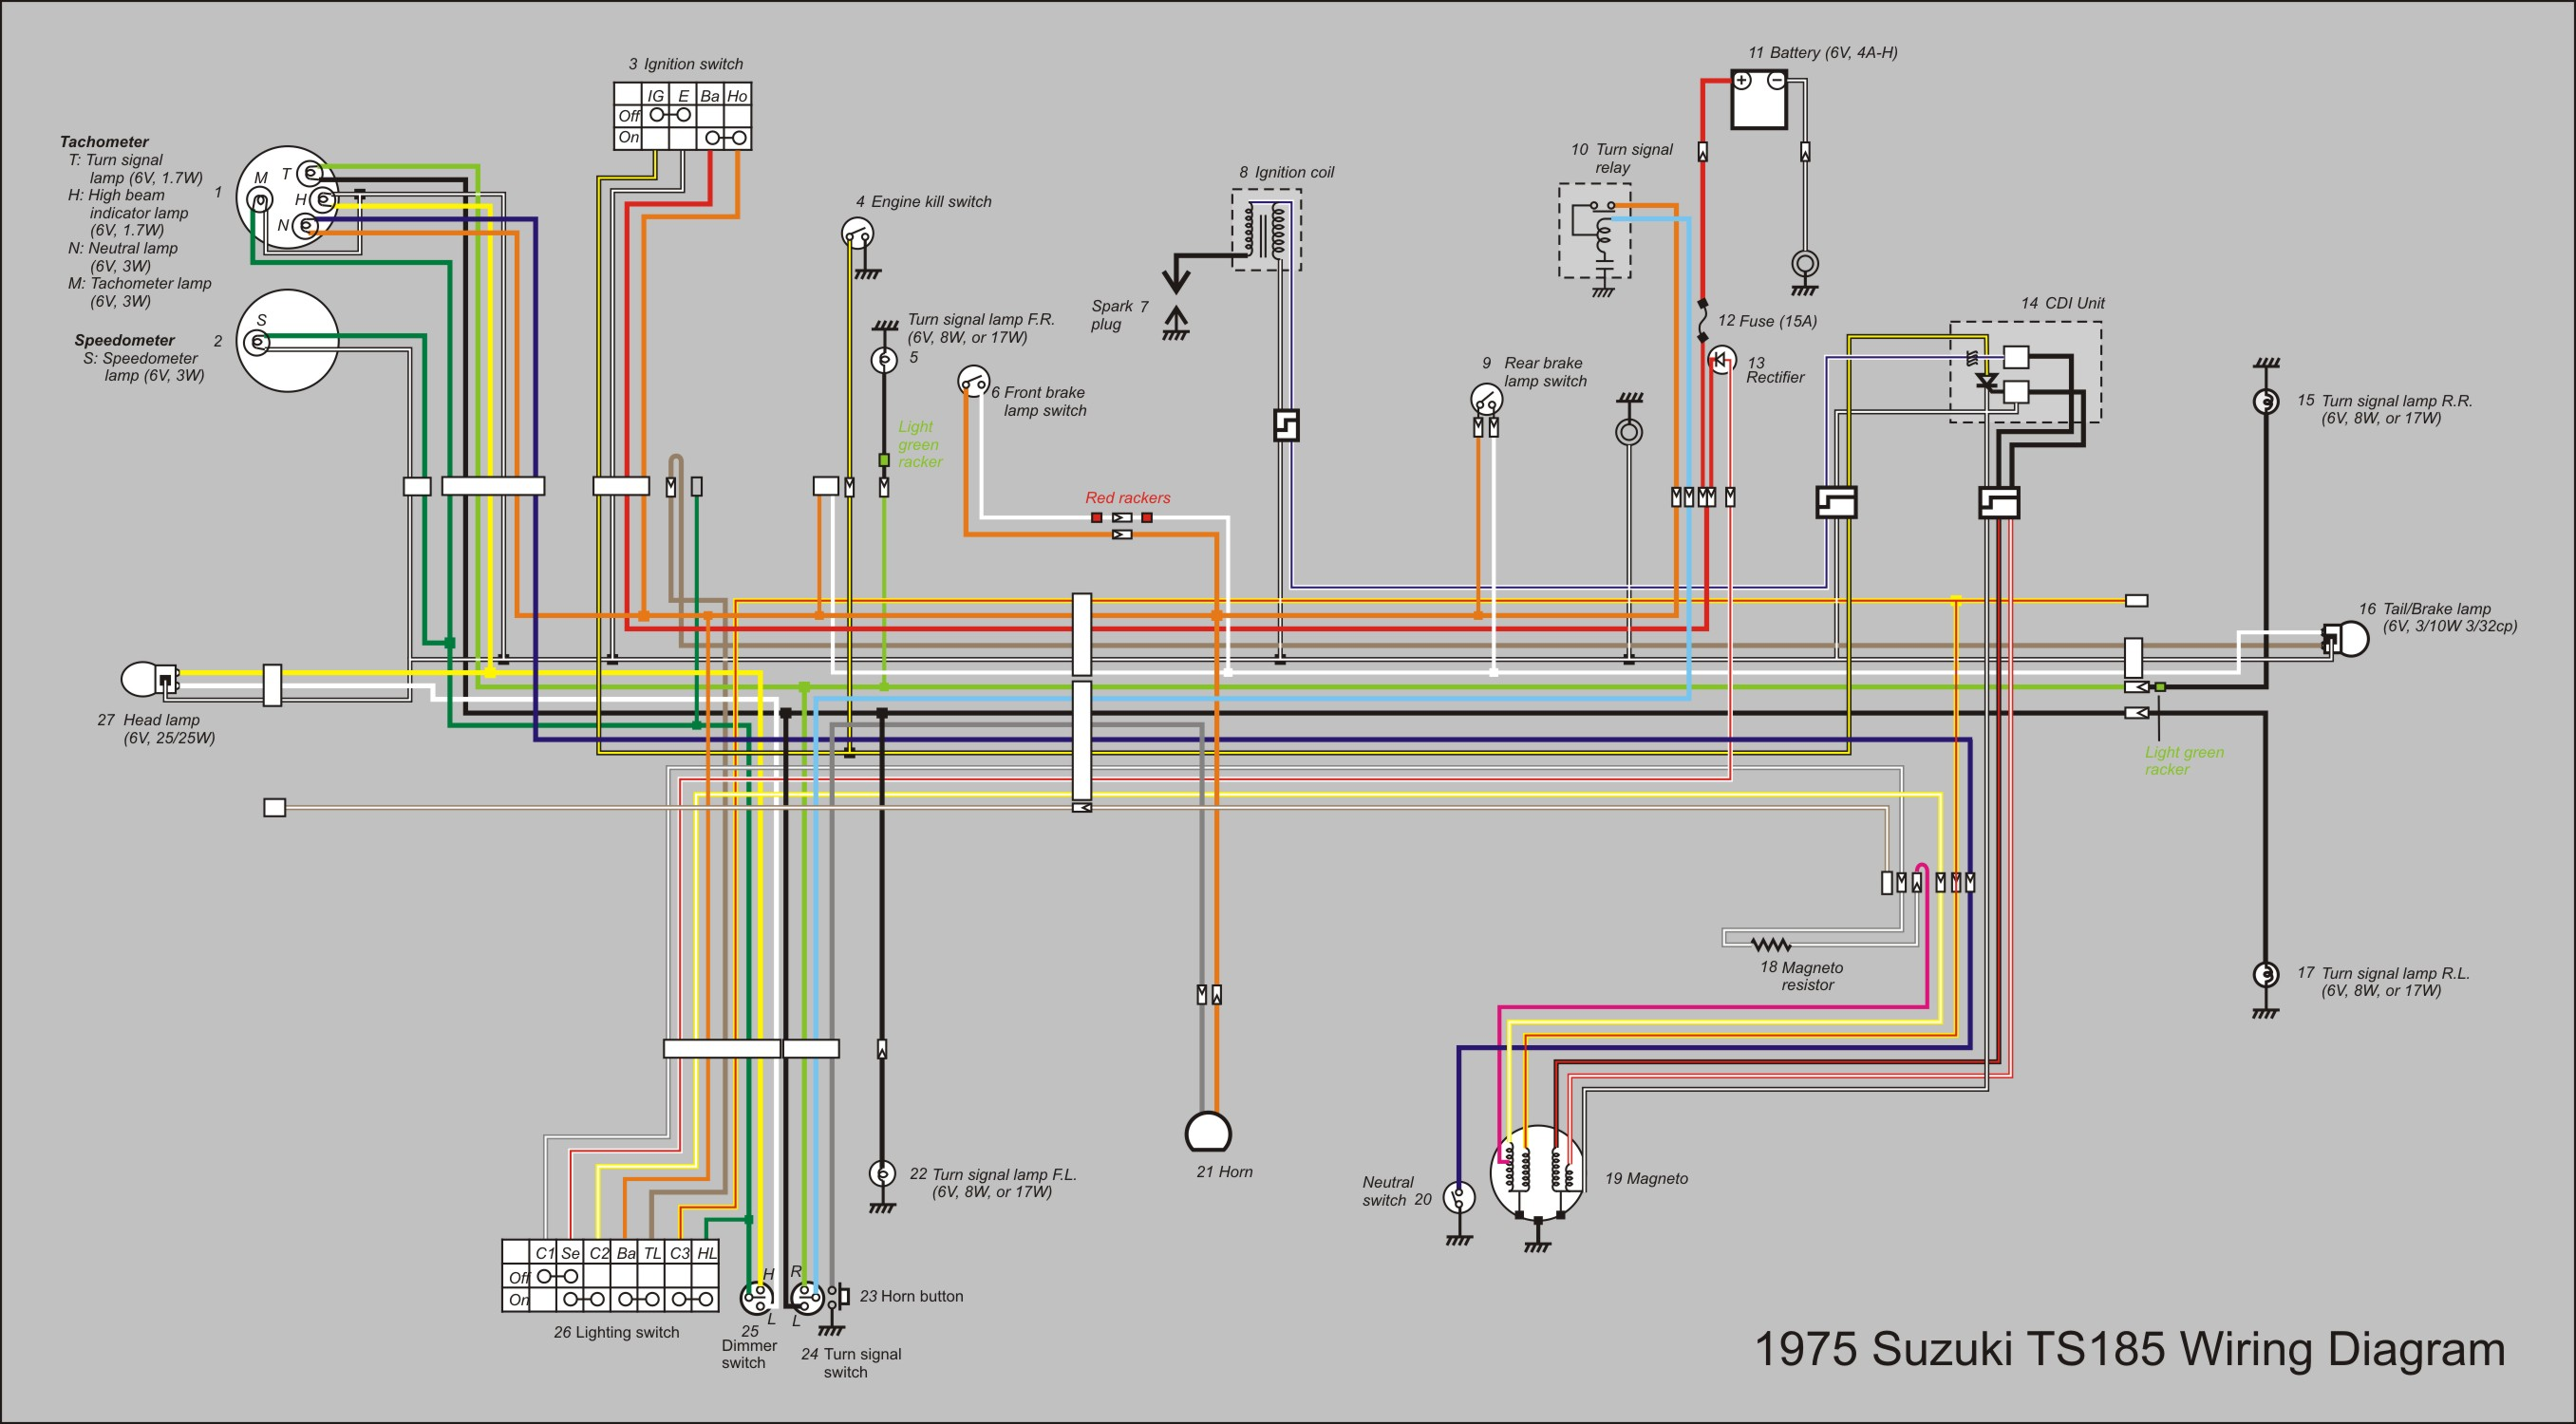 TS185_Wiring_Diagram_new file ts185 wiring diagram new jpg wikimedia commons suzuki ts185 wiring diagram at gsmx.co